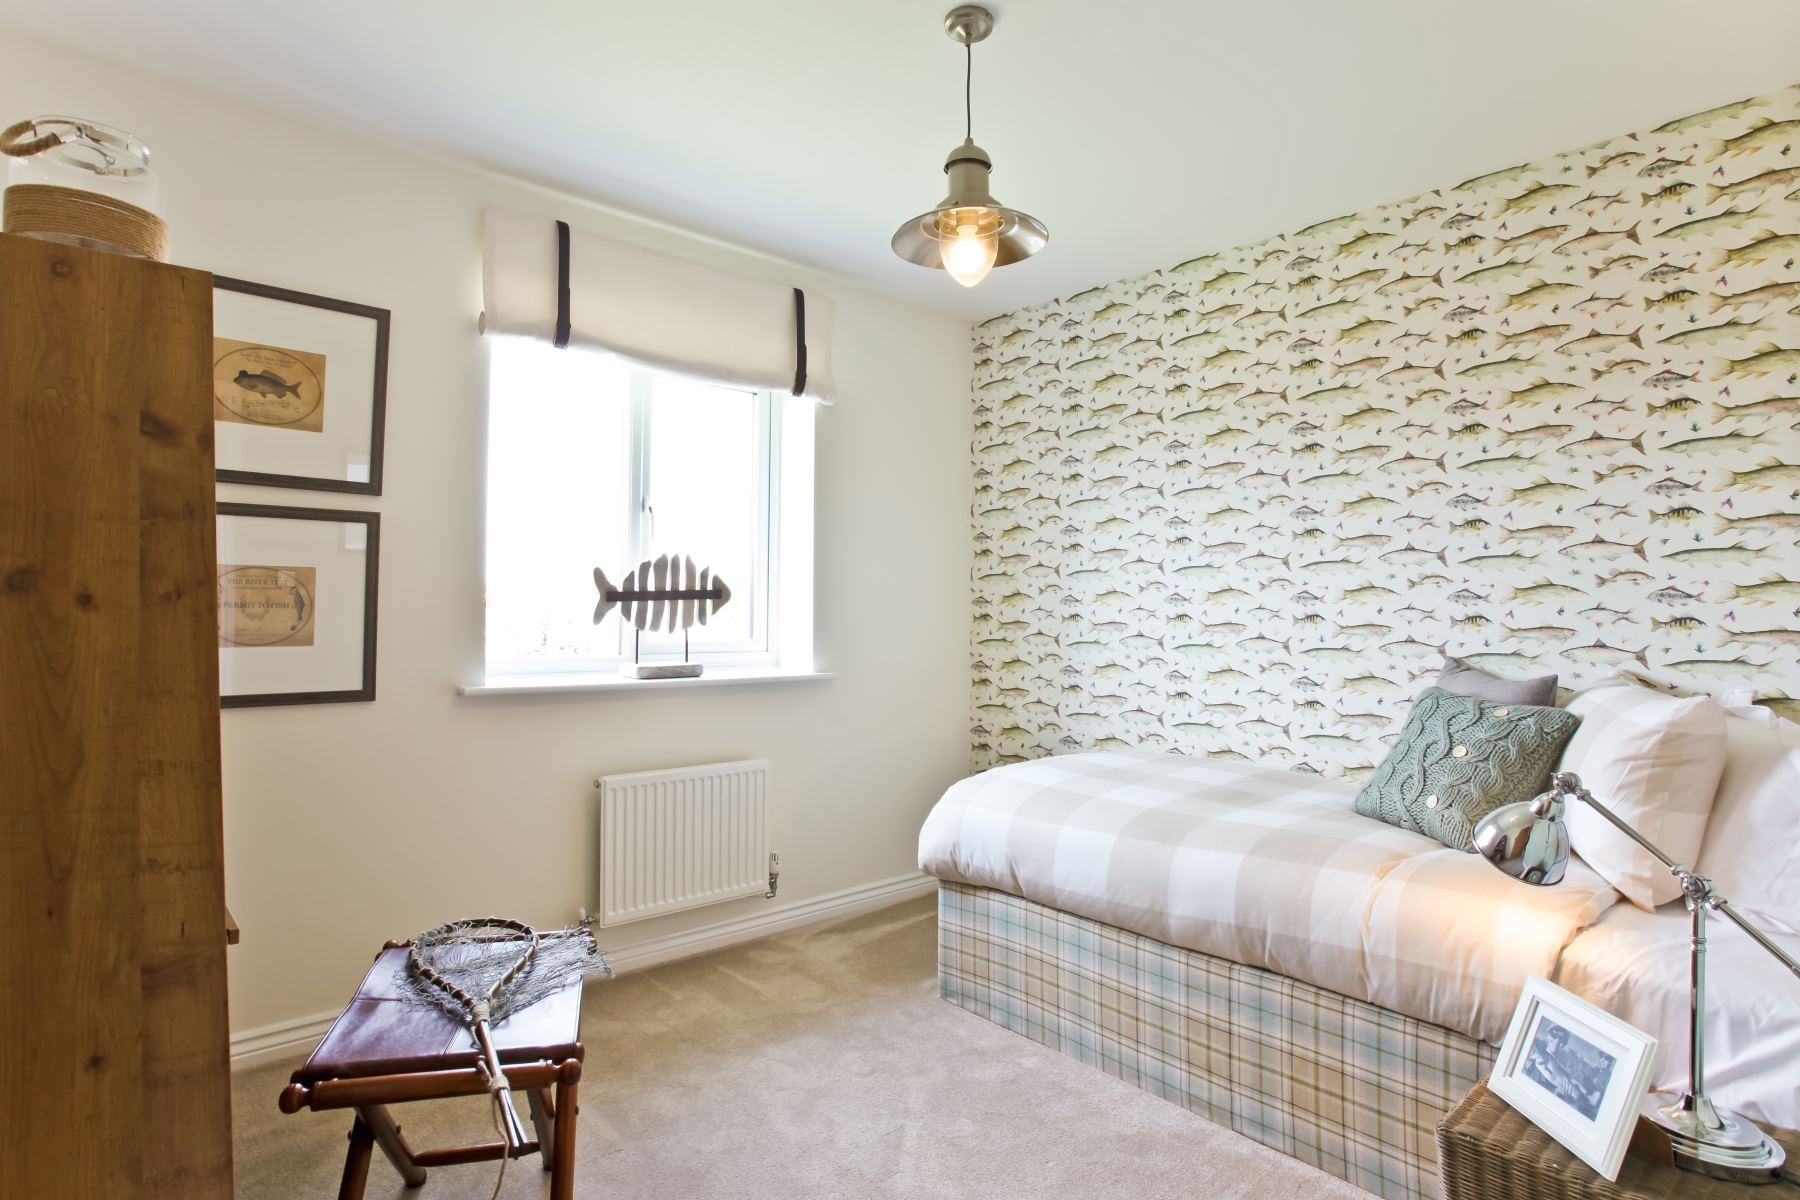 Eynsham_Bedroom_4